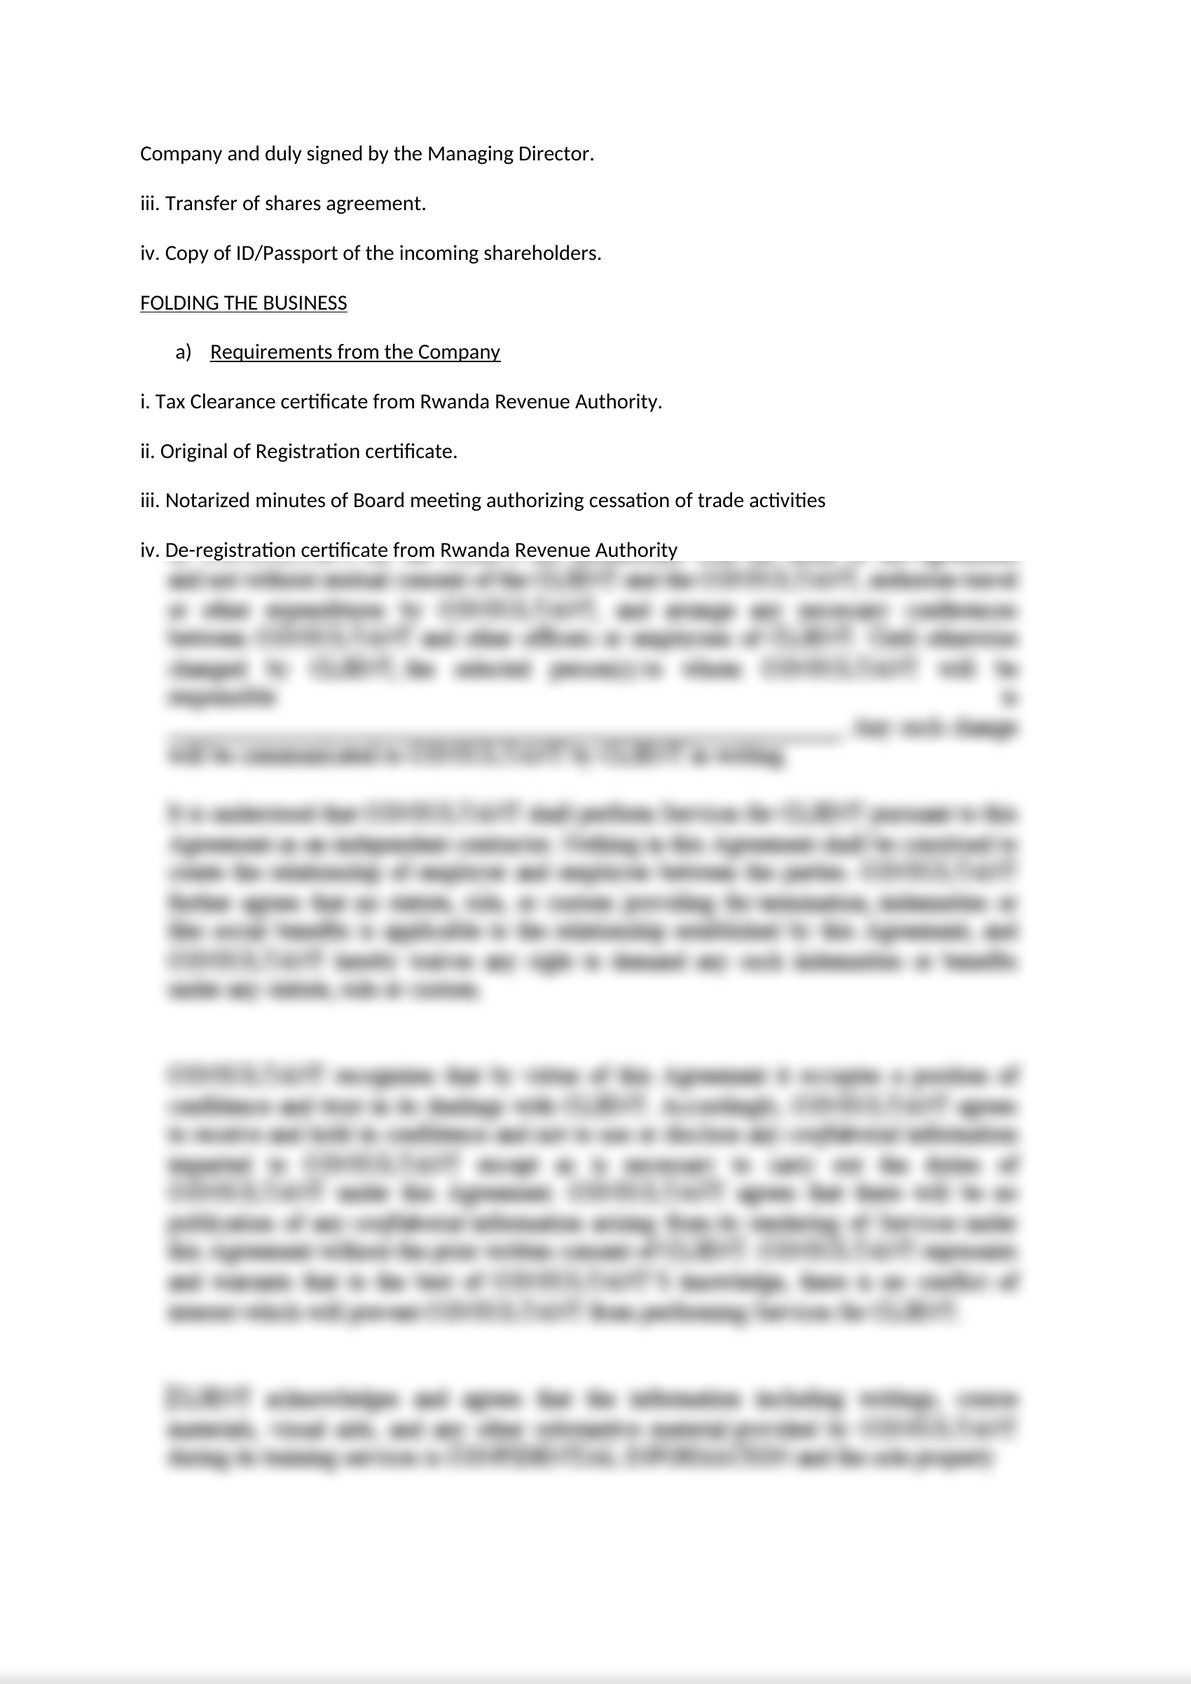 IMPORTANT ASPECTS OF THE LAW FOR A SMALL MEDIUM ENTERPRISE IN RWANDA-2